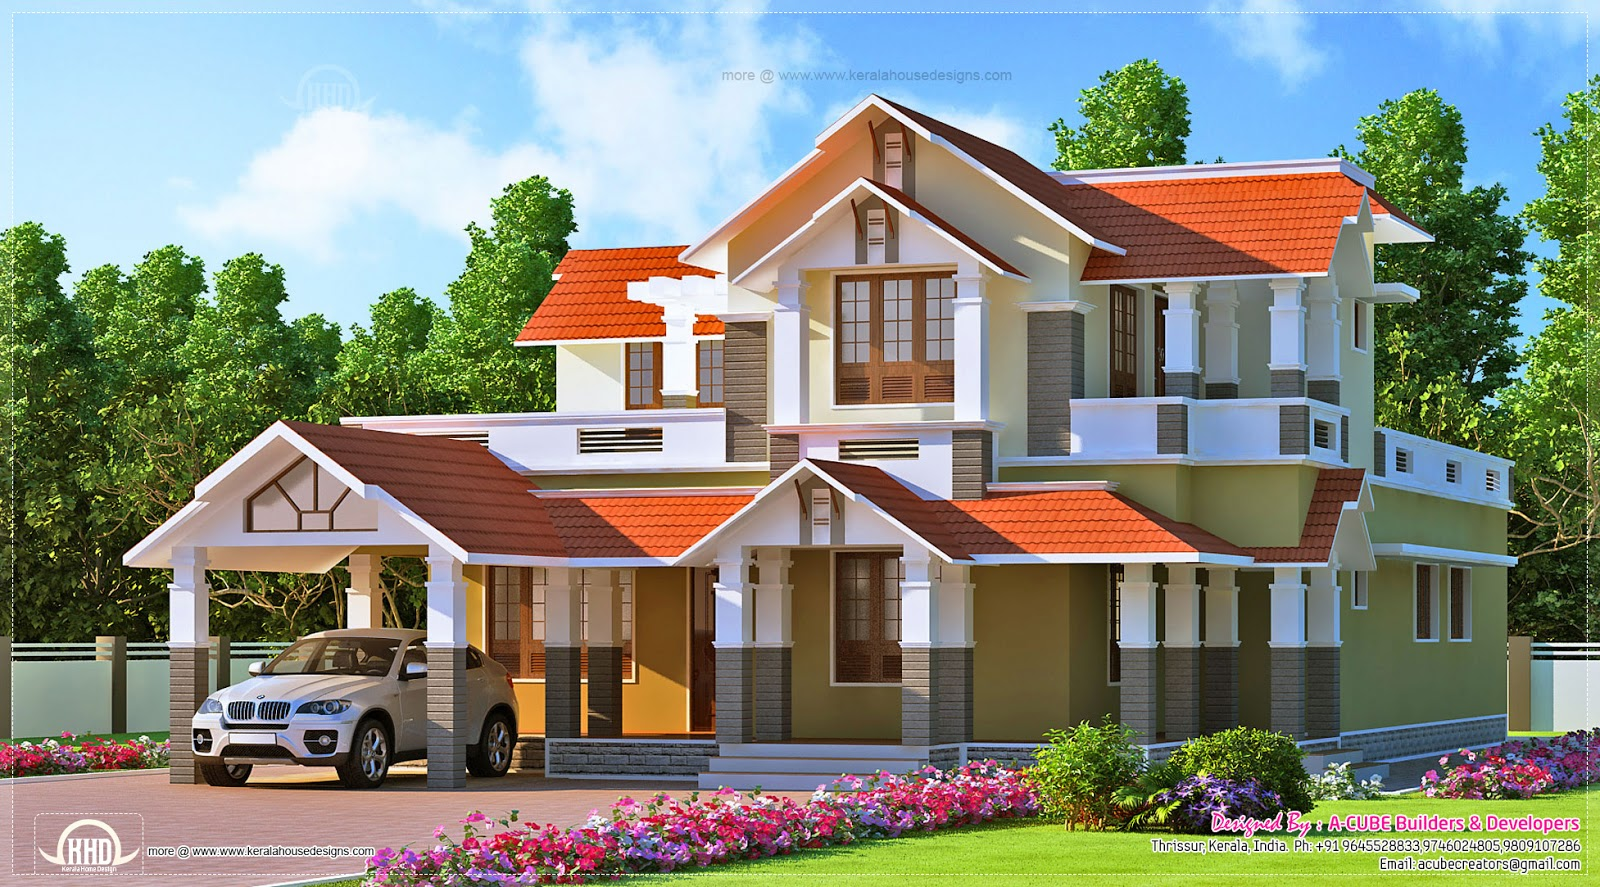 Kerala style dream home design in 2900 house for Design your dream home